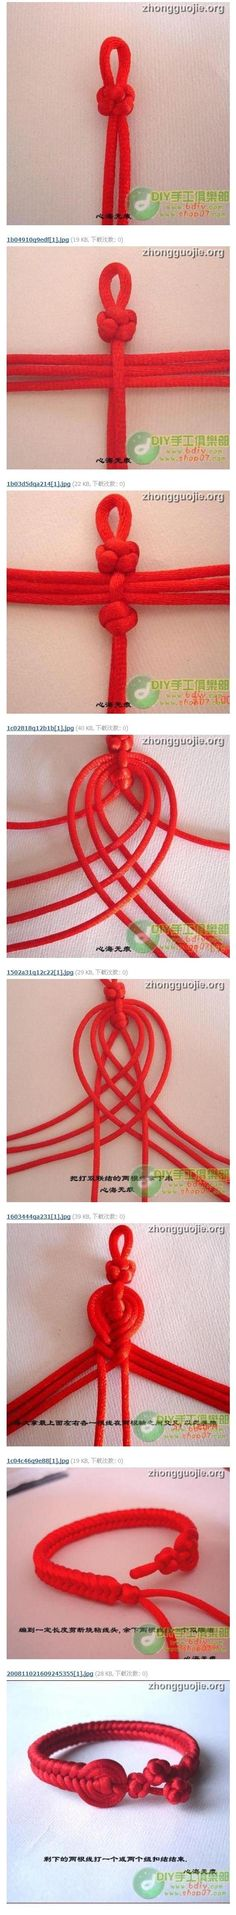 Chinese knot end